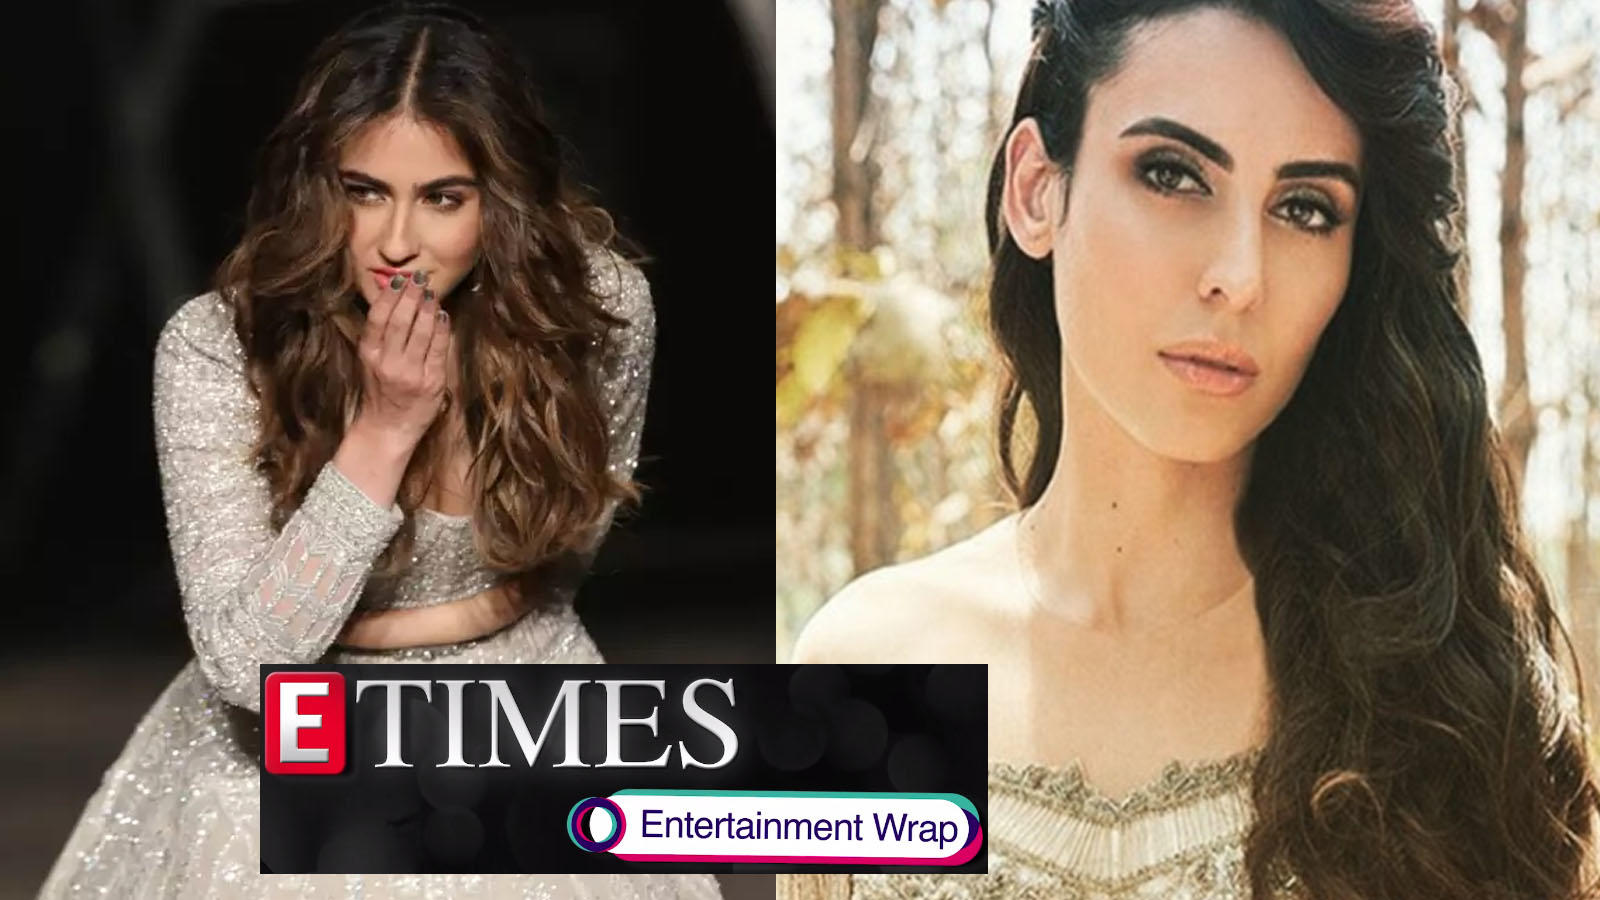 sara-ali-khan-beats-coronavirus-lockdown-blues-with-her-classical-dance-moves-mandana-karimi-is-worried-for-her-family-in-iran-amid-covid-19-crisis-and-more-